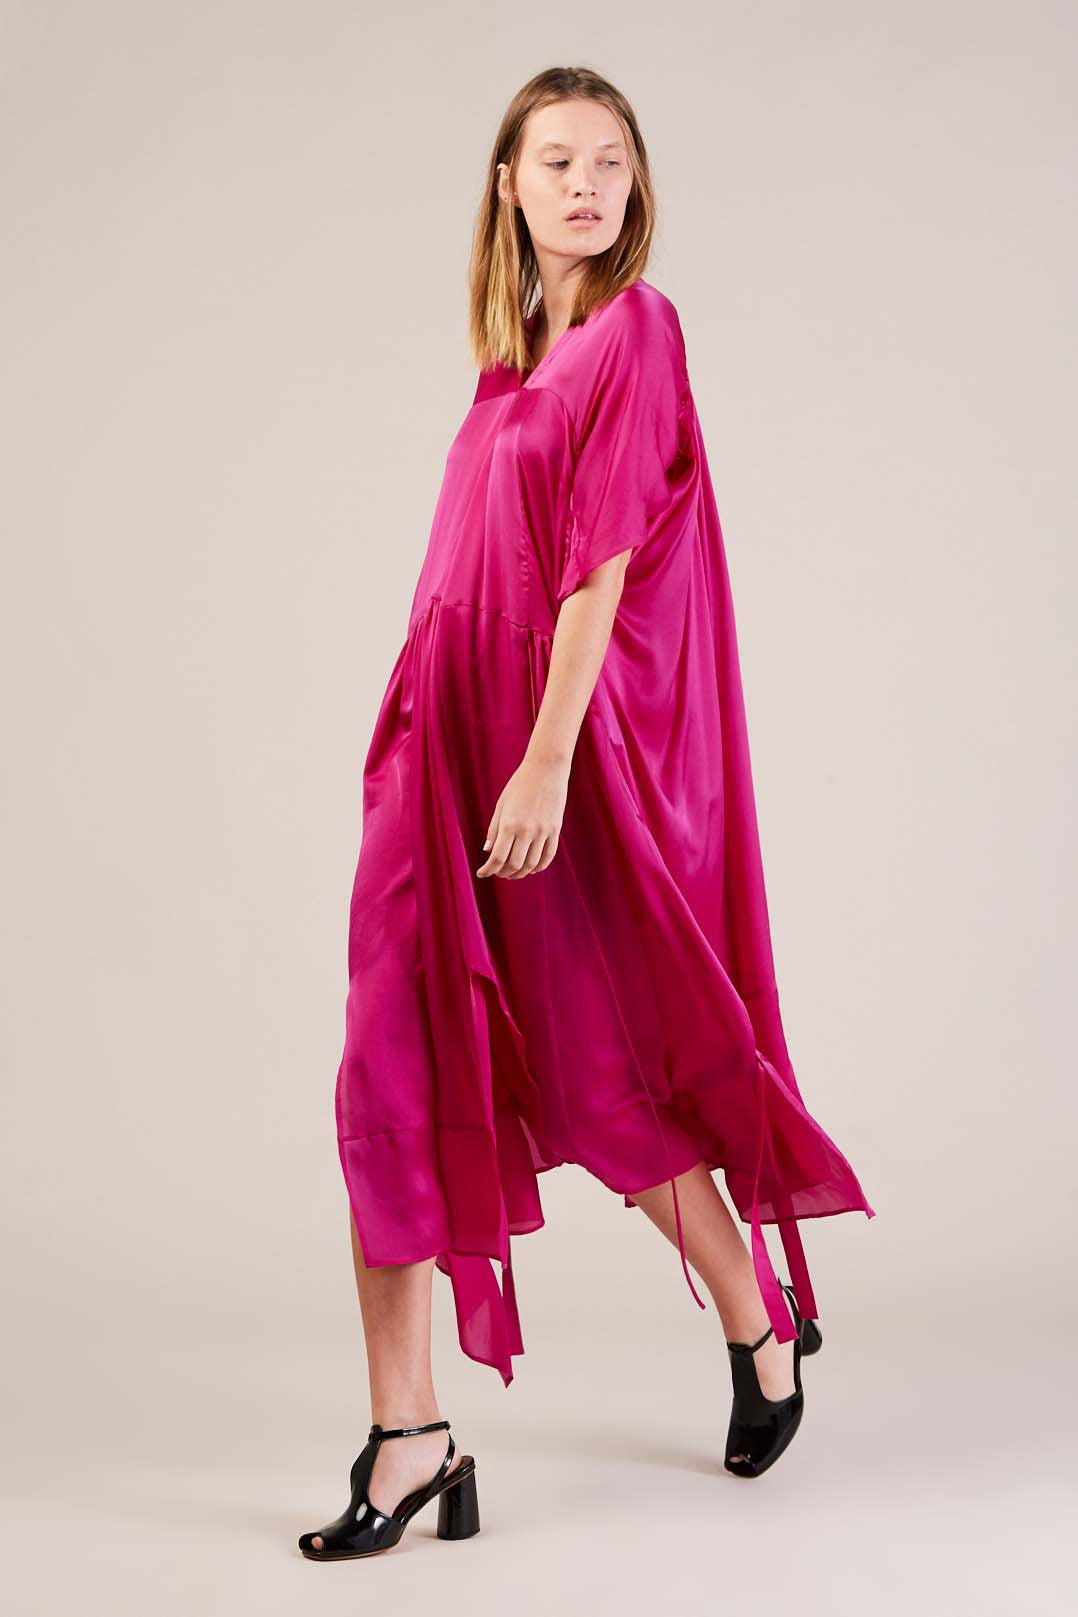 Daco s/s dress, floral fuchsia by Christian Wijnants